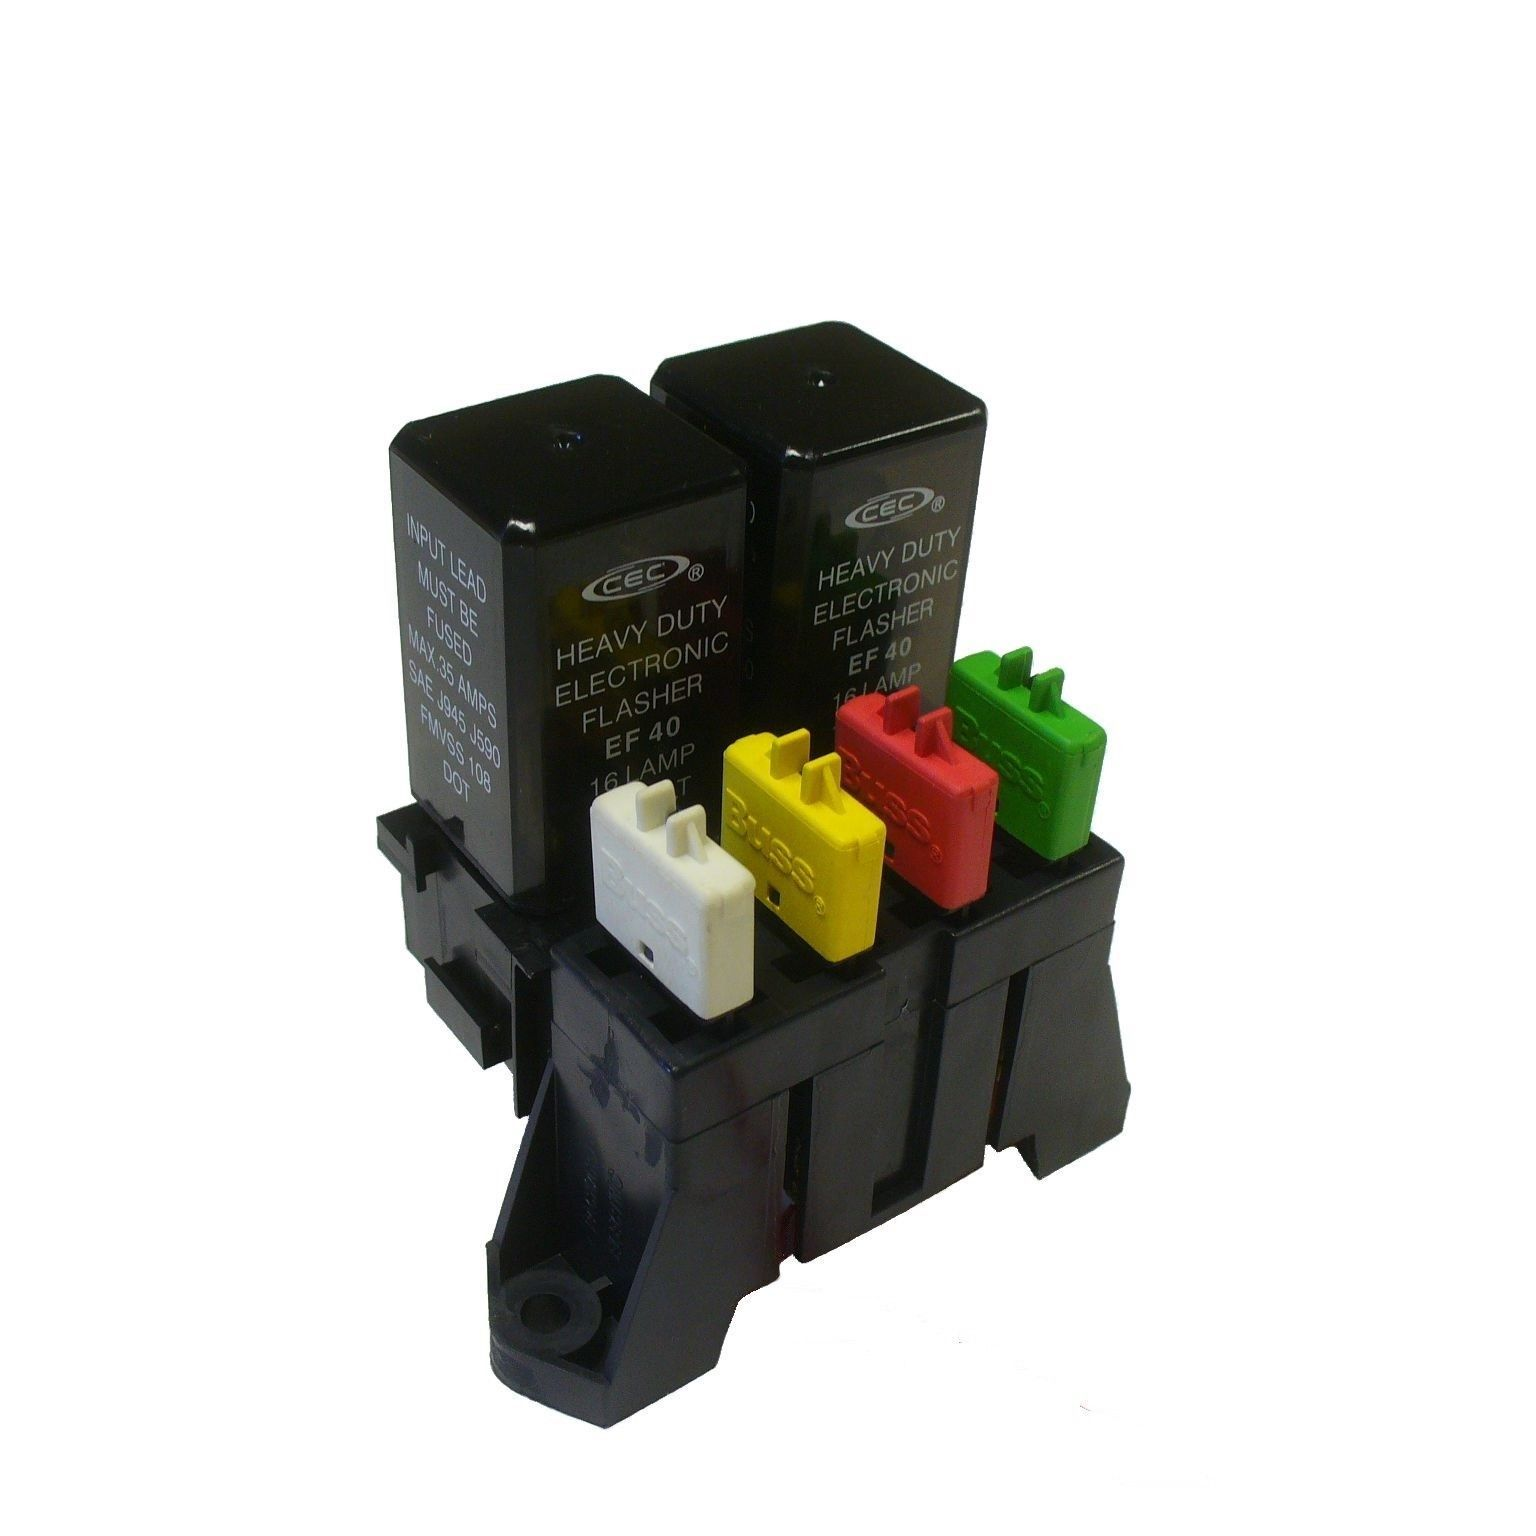 Atc 4 Way Fuse With Dual Relay Panel Block Holder With Buss Bar And Terminals Fuse Panel Fuses Paneling